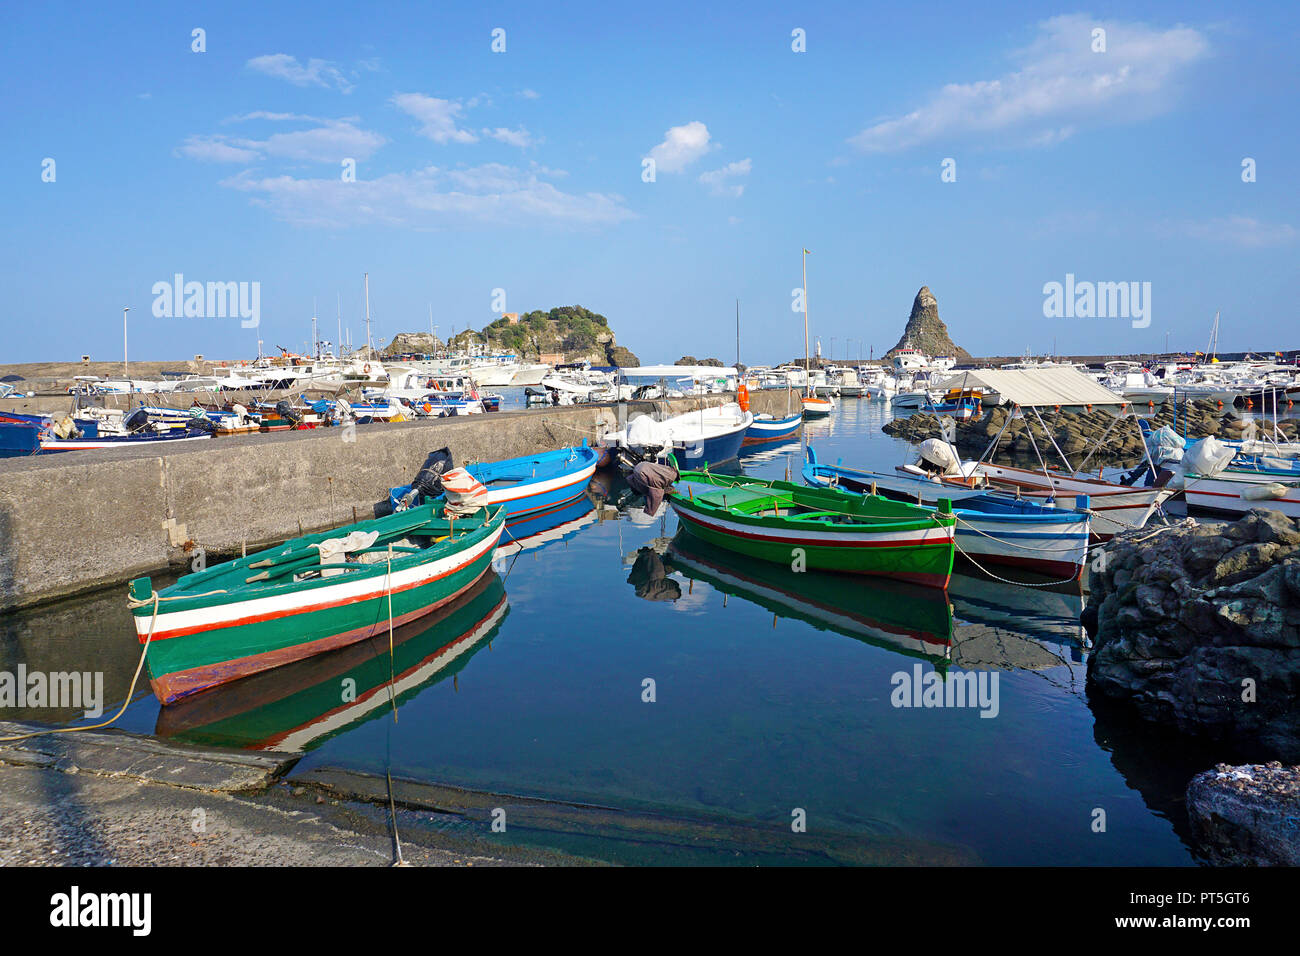 Harbour of fishing village Aci Trezza, behind the cyclops islands, comune of Aci Castello, Catania, Sicily, Italy Stock Photo